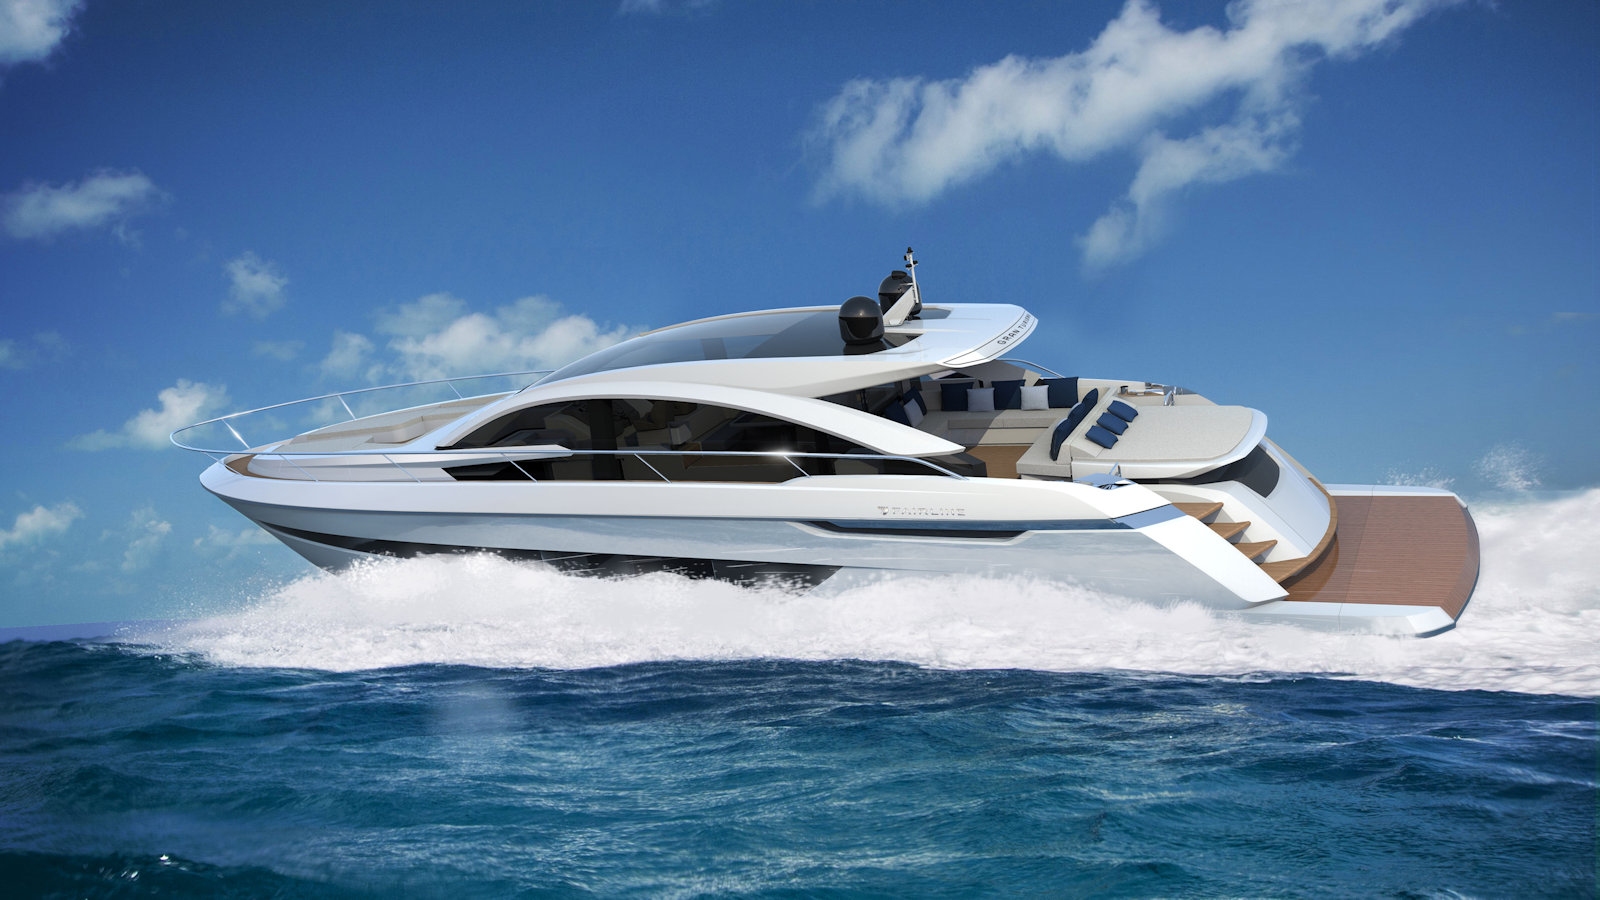 360 VR Virtual Tours of the Fairline 65 GTO – VRCLOUD